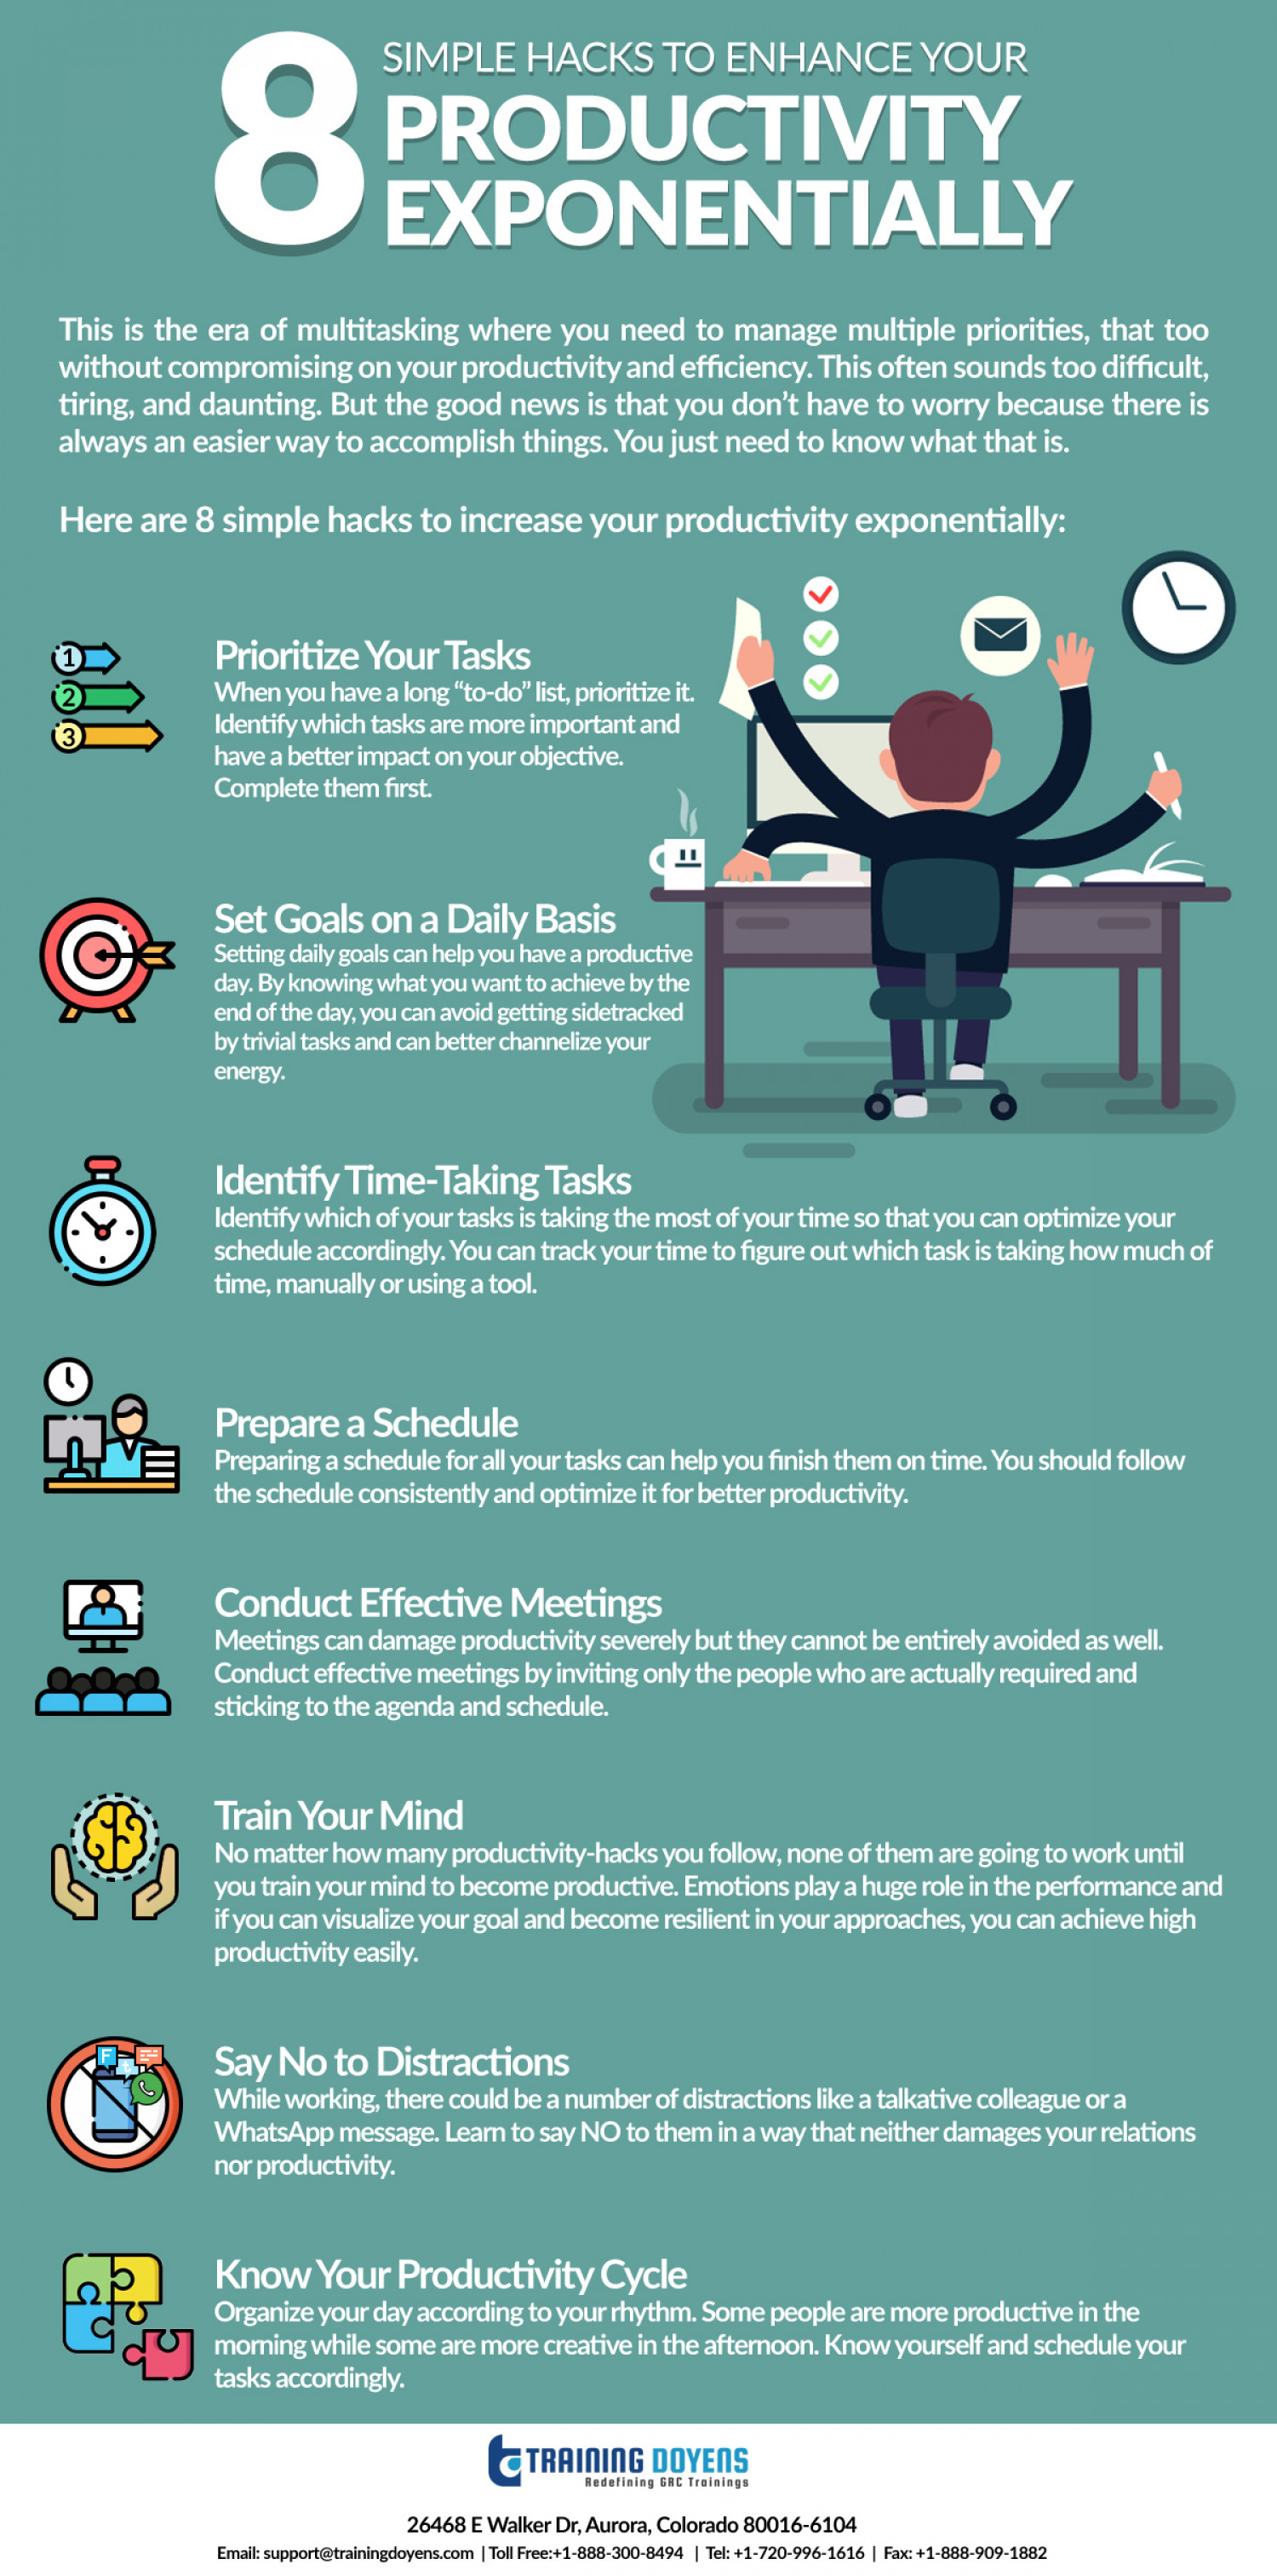 8 Simple Hacks to Enhance Your Productivity Exponentially Infographic